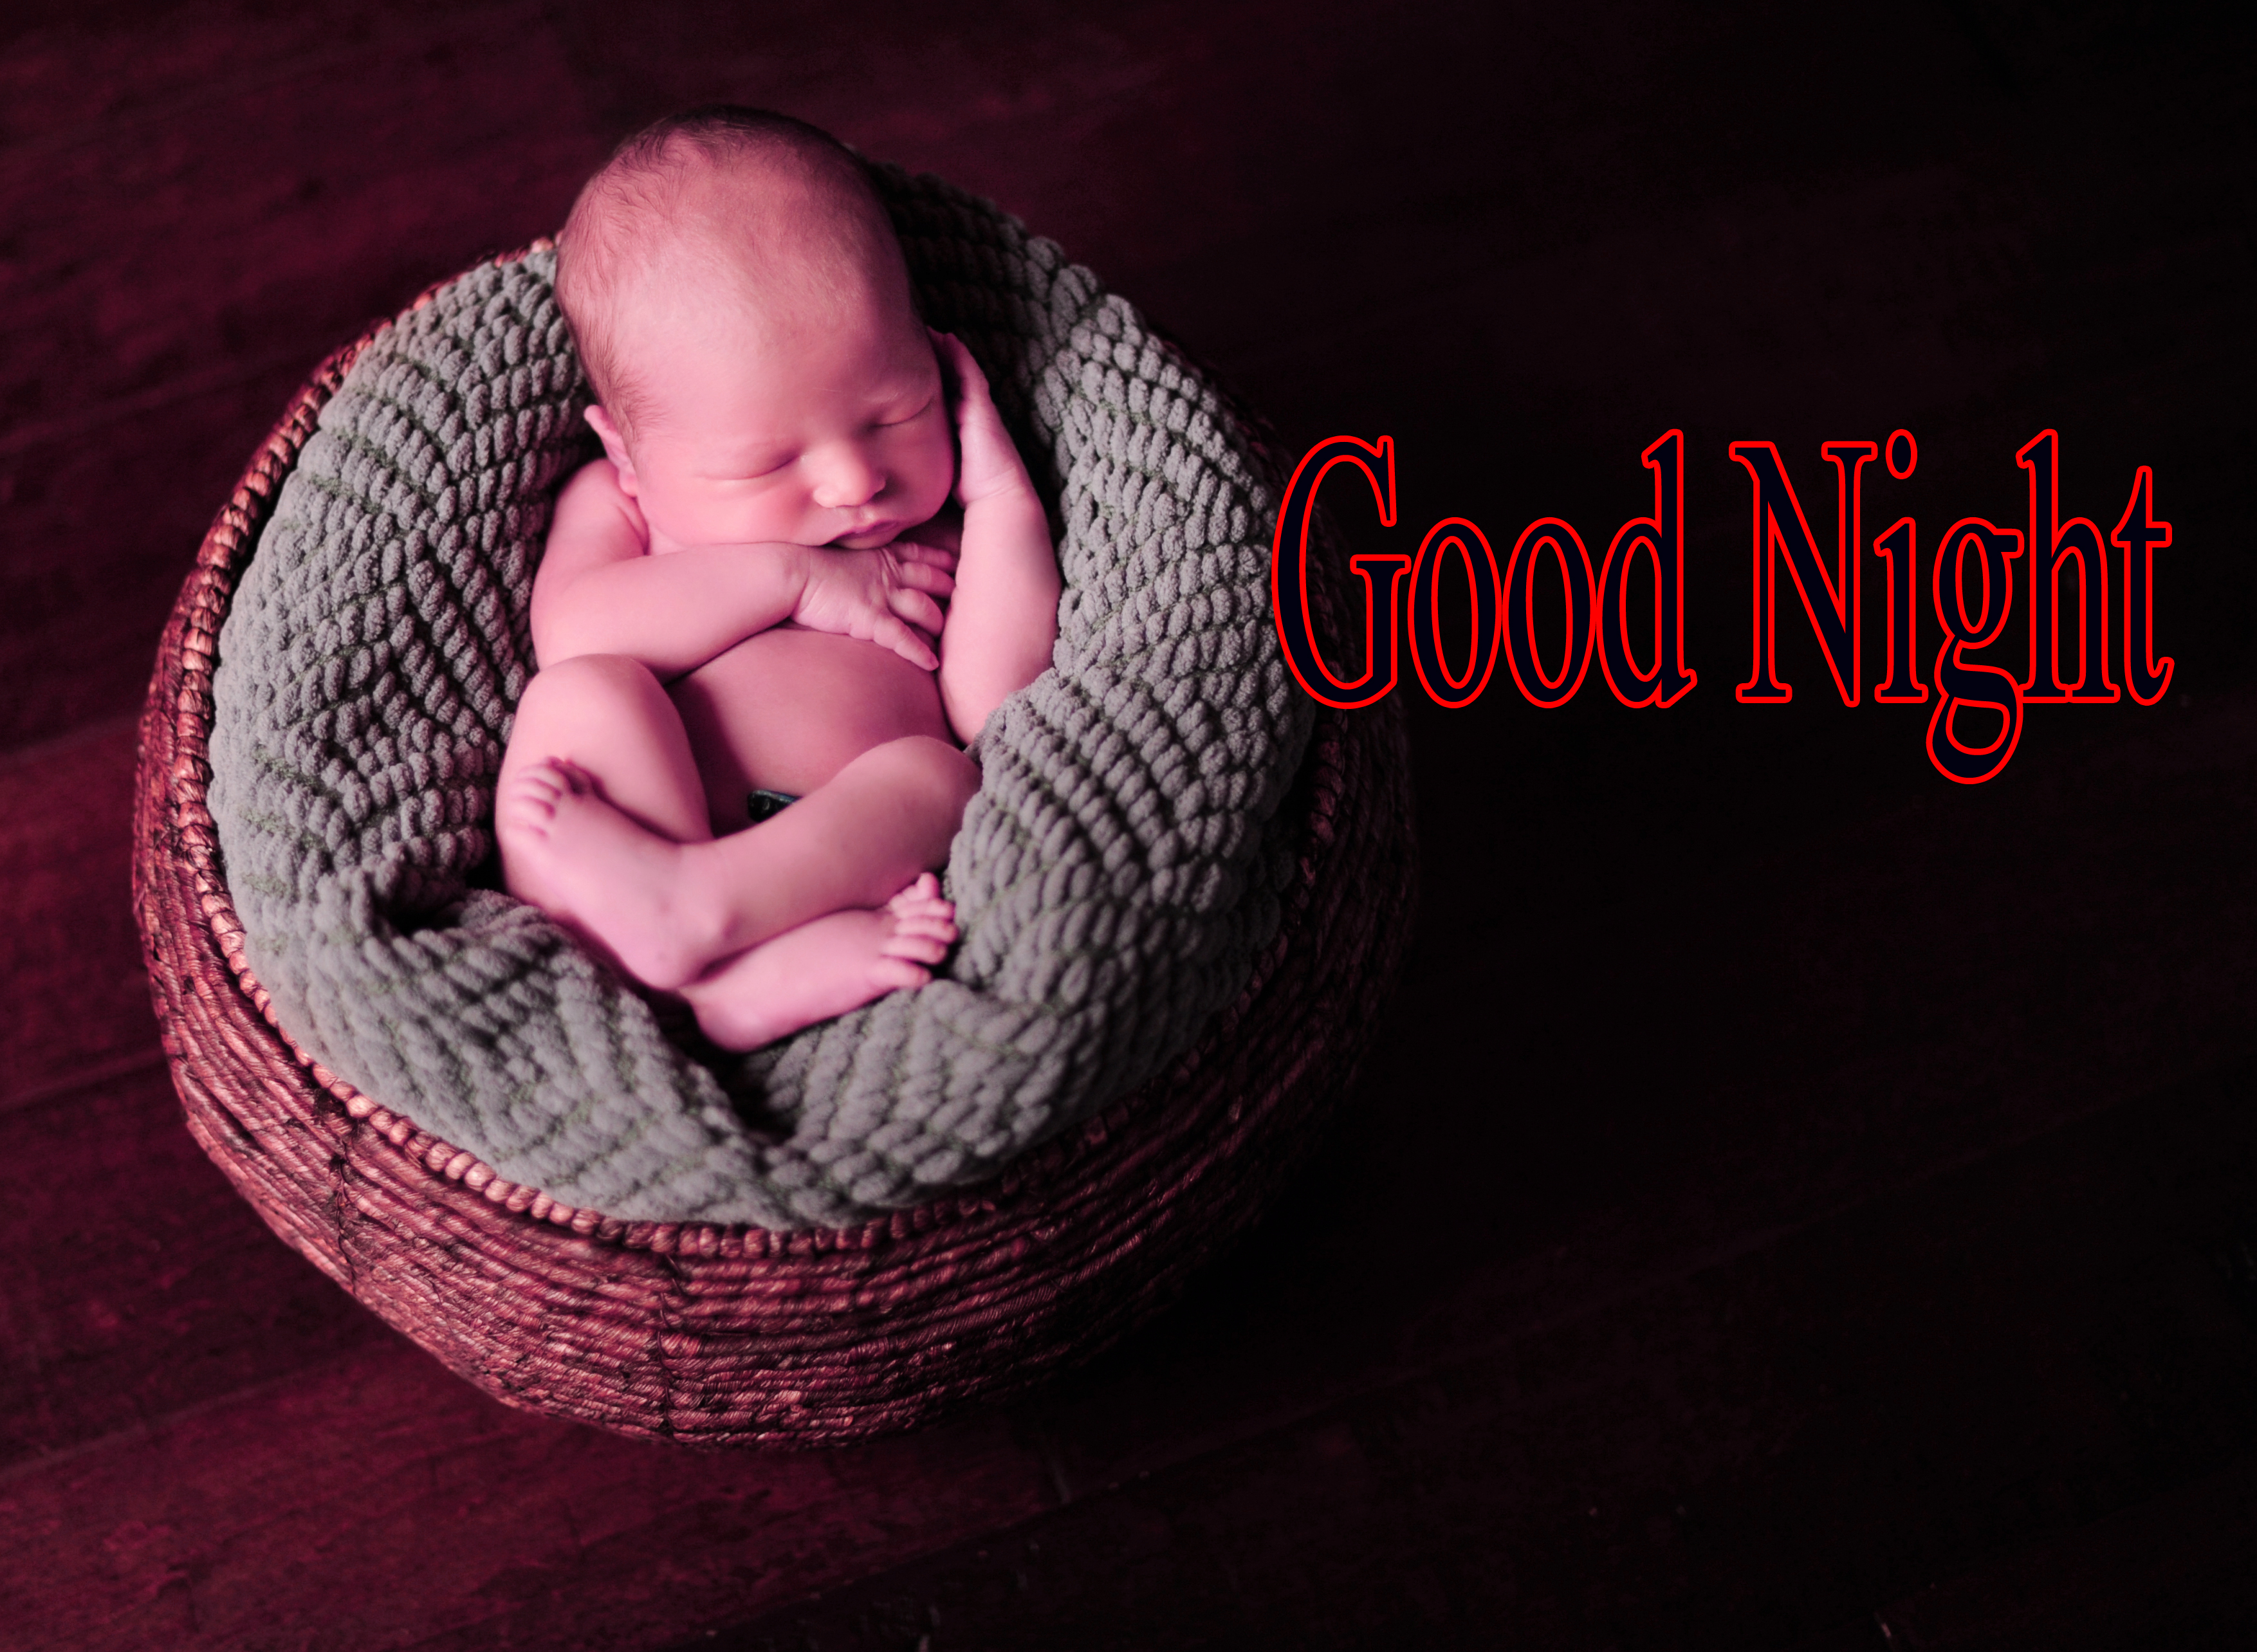 GOOD NIGHT IMAGES WITH CUTE BABY BOYS & GIRLS WALLPAPER PICS FREE FOR WHATSAPP